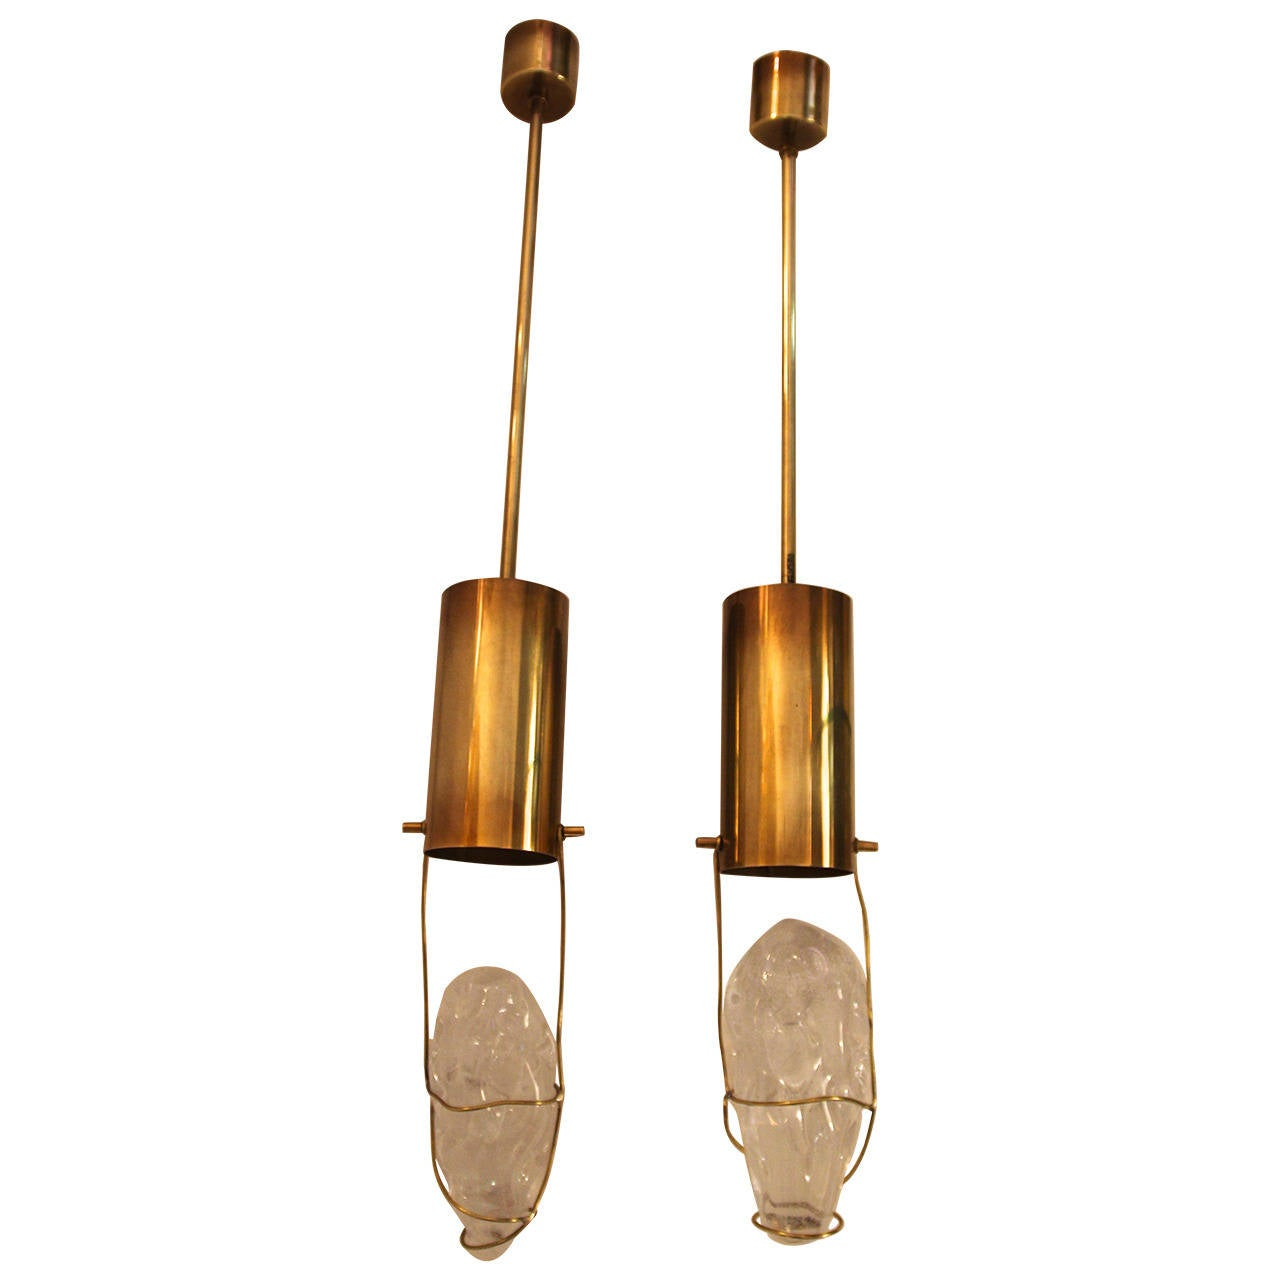 Angelo Brotto, Esperia Edition Pair of Pendants, circa 1970 Italy